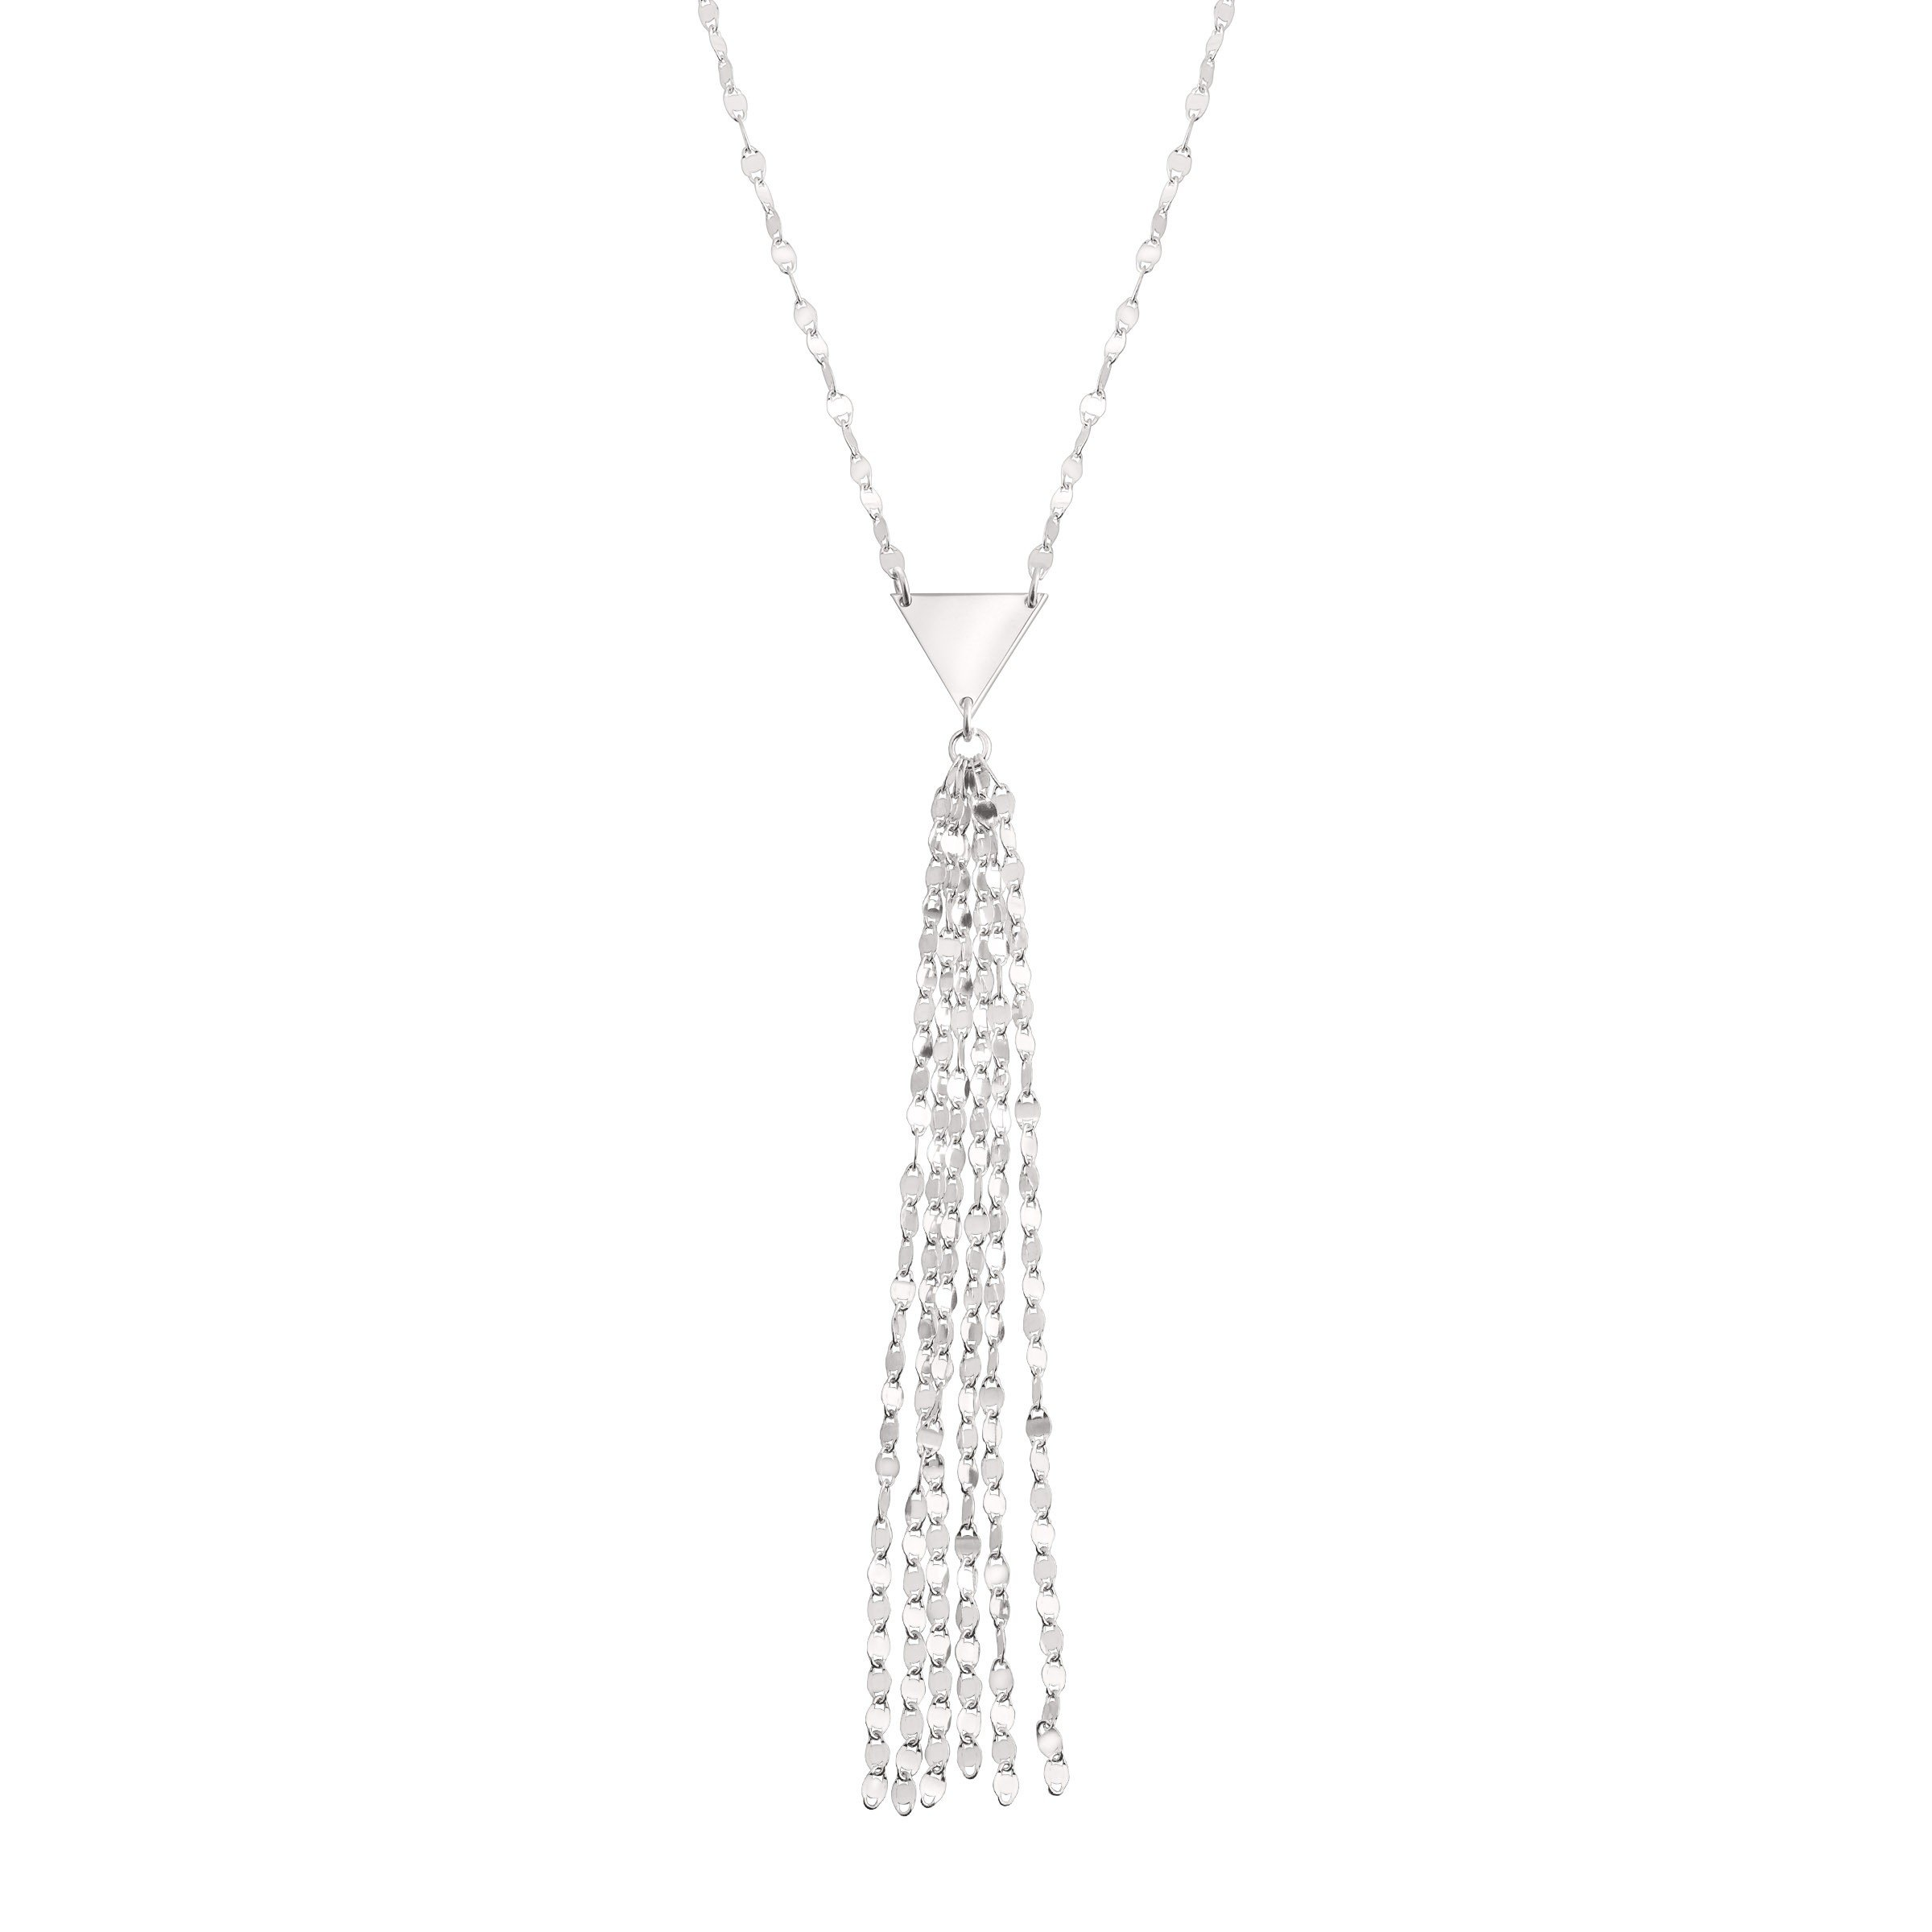 Silpada 'Siena' Lariat Tassel Necklace in Sterling Silver